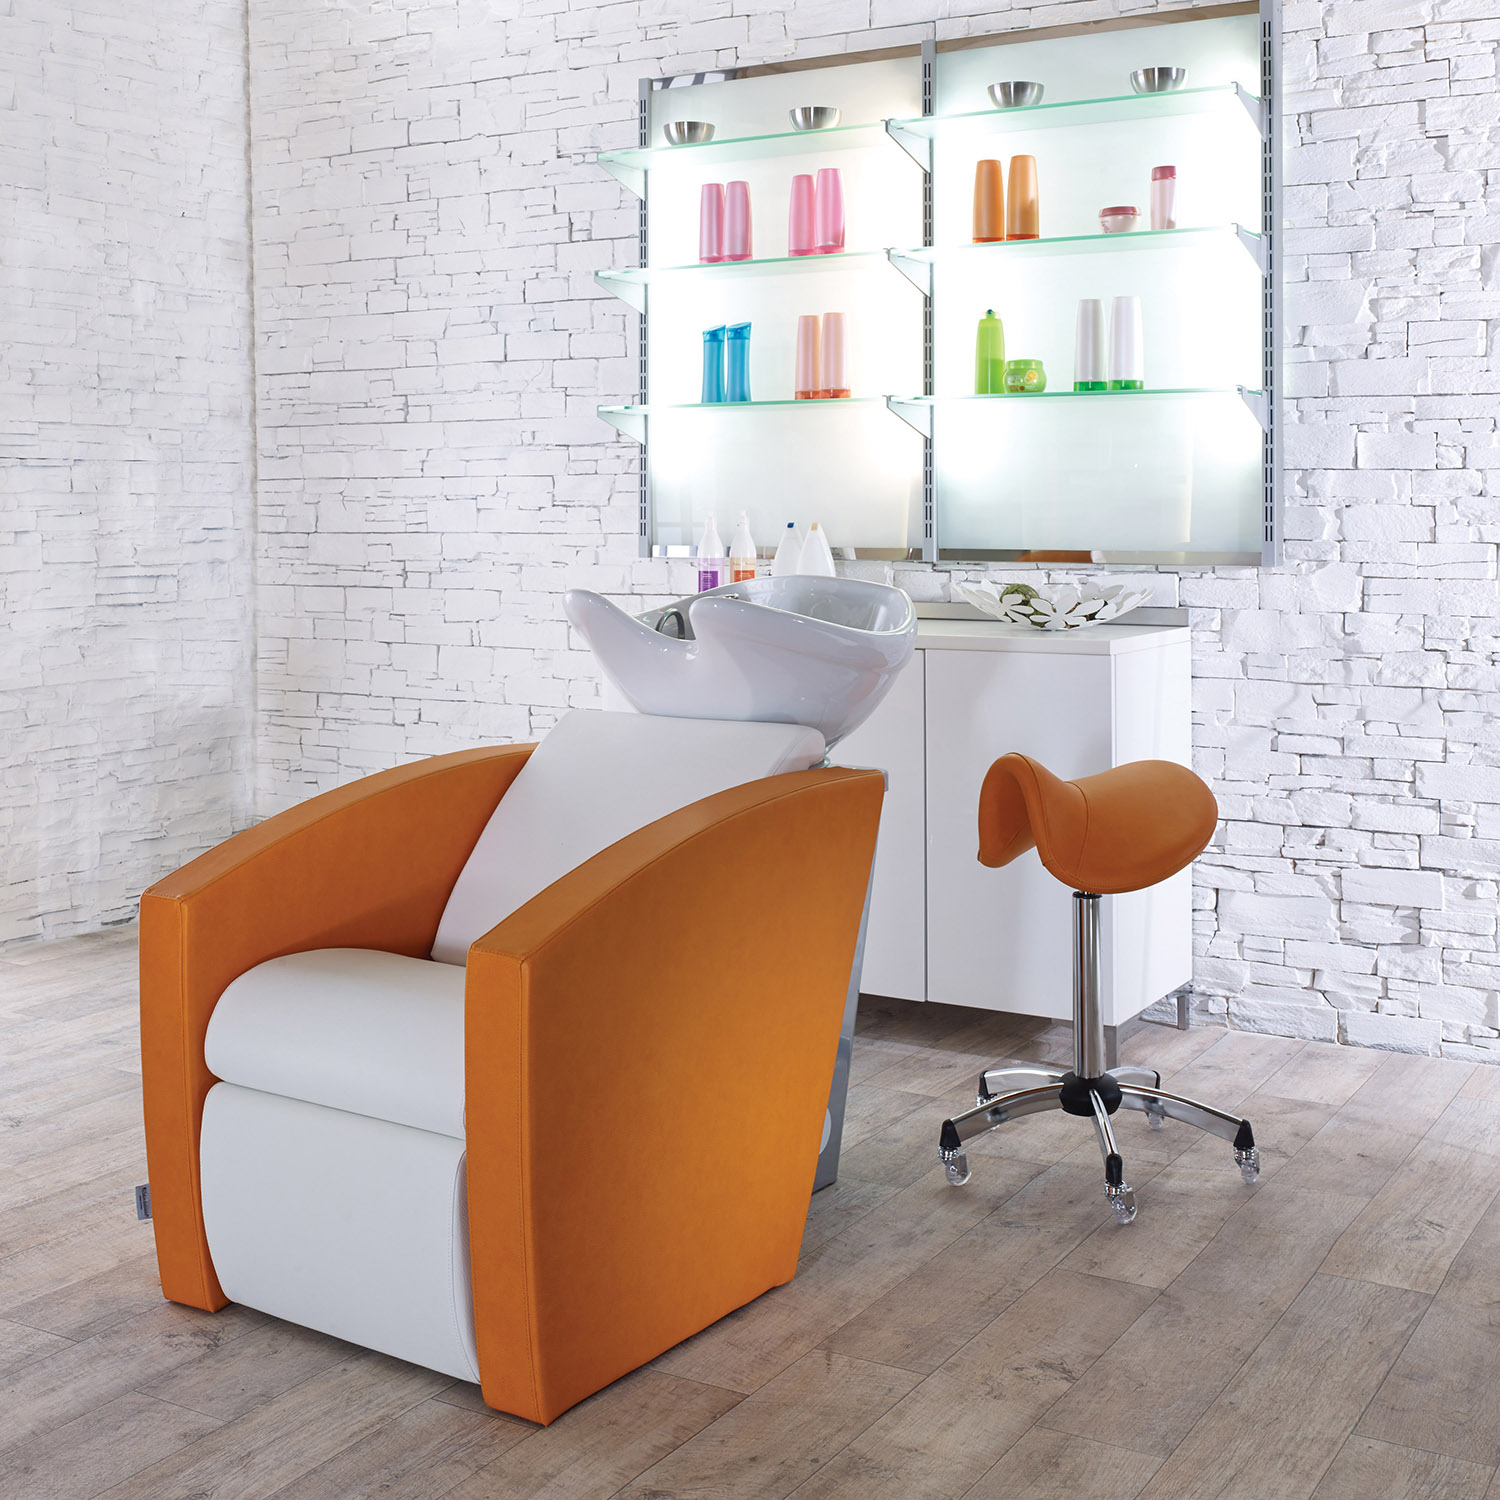 Mirage Shampoo Bowl with Chair by Salon Ambience alternative product image 2